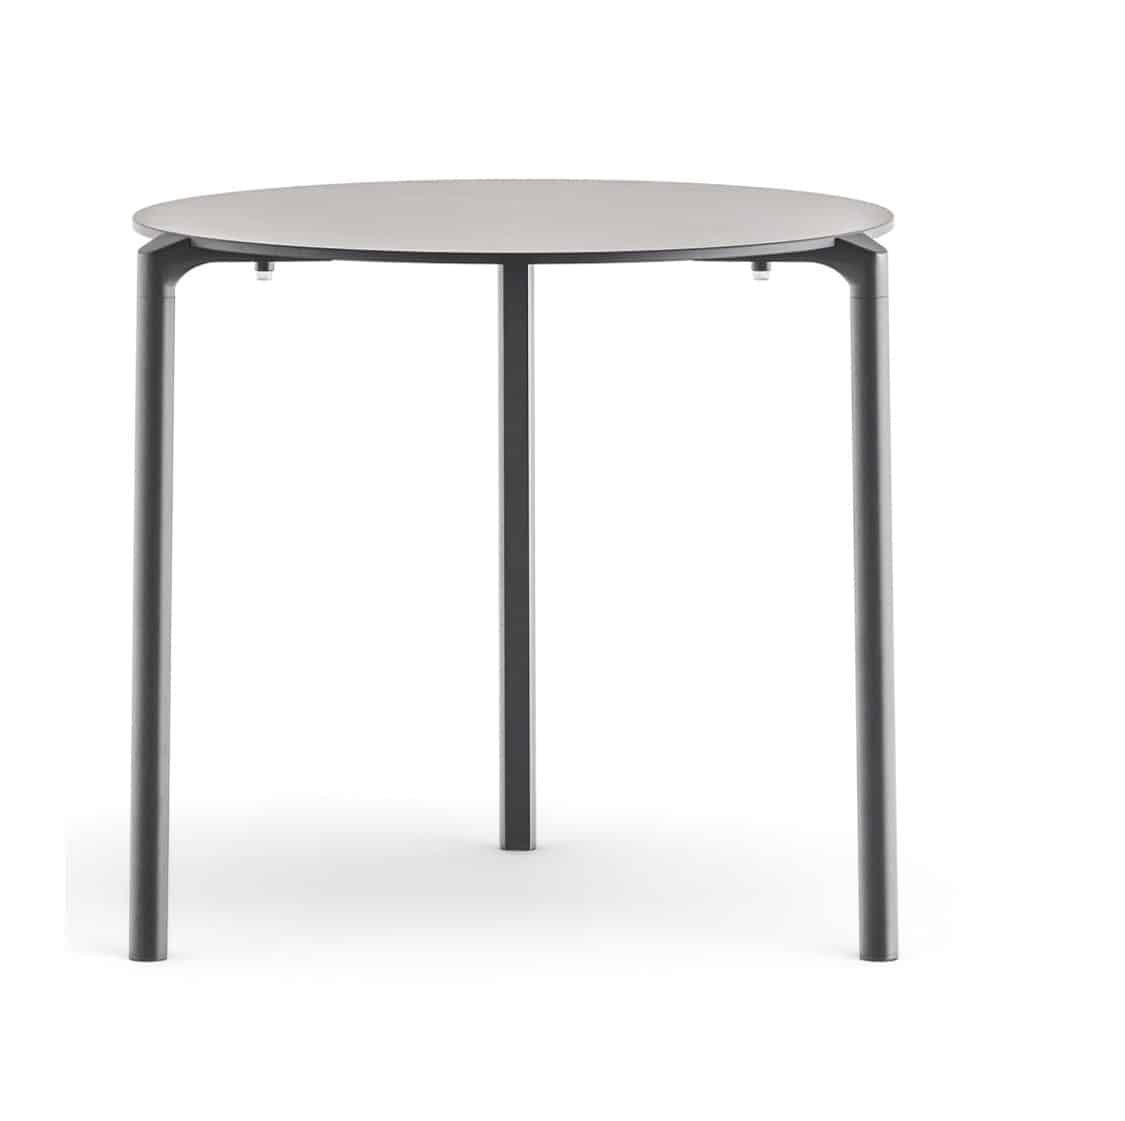 Jump Table TJ3 Pedrali at DeFrae Stackable Outdoor Complete Table